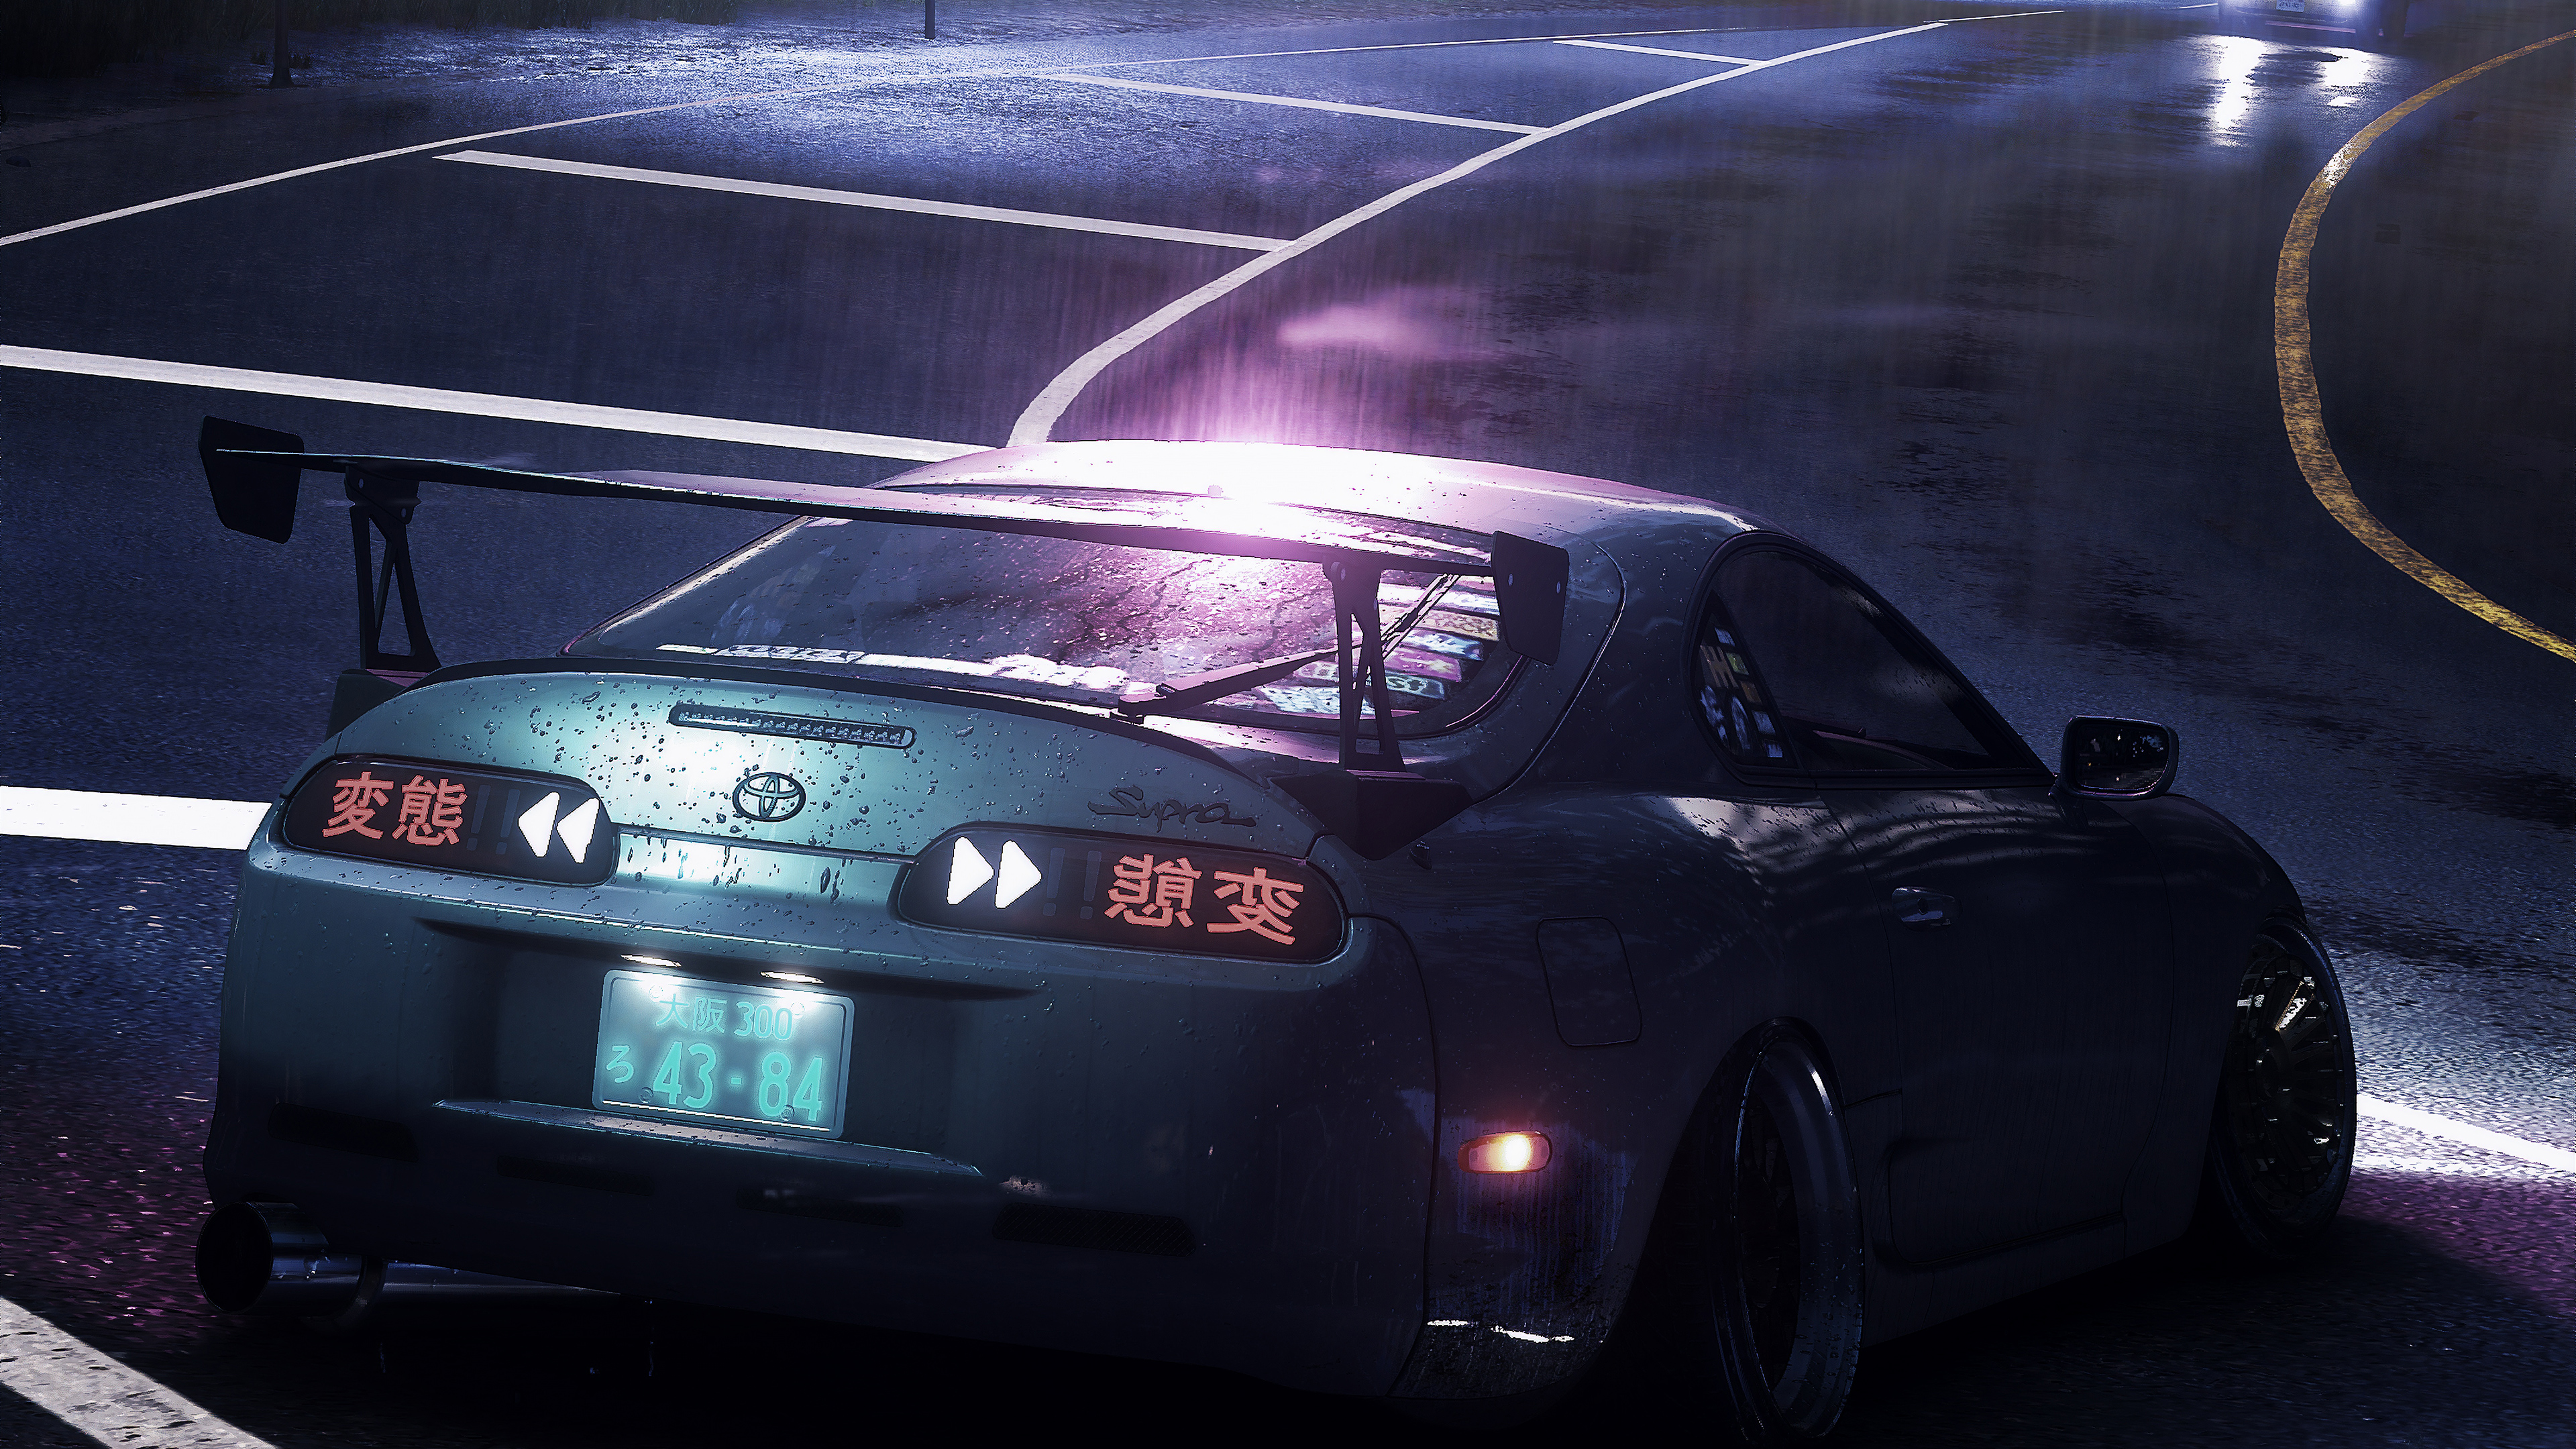 Toyota Supra Need For Speed, Hd Games, 4k Wallpapers, - Toyota Supra Wallpaper 4k , HD Wallpaper & Backgrounds